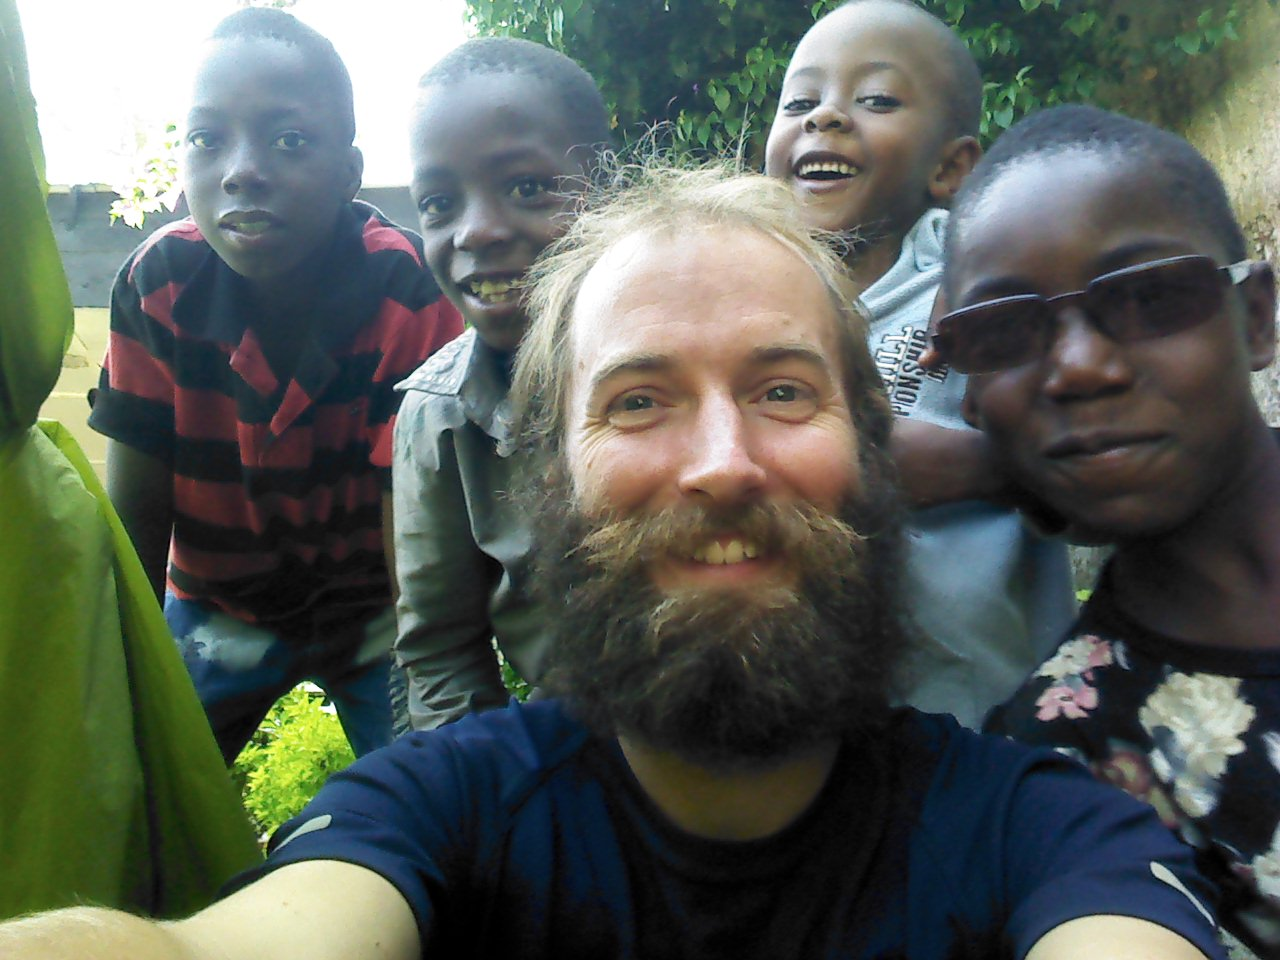 Kids intrigued by me and my tent, Macenta, Guinea.